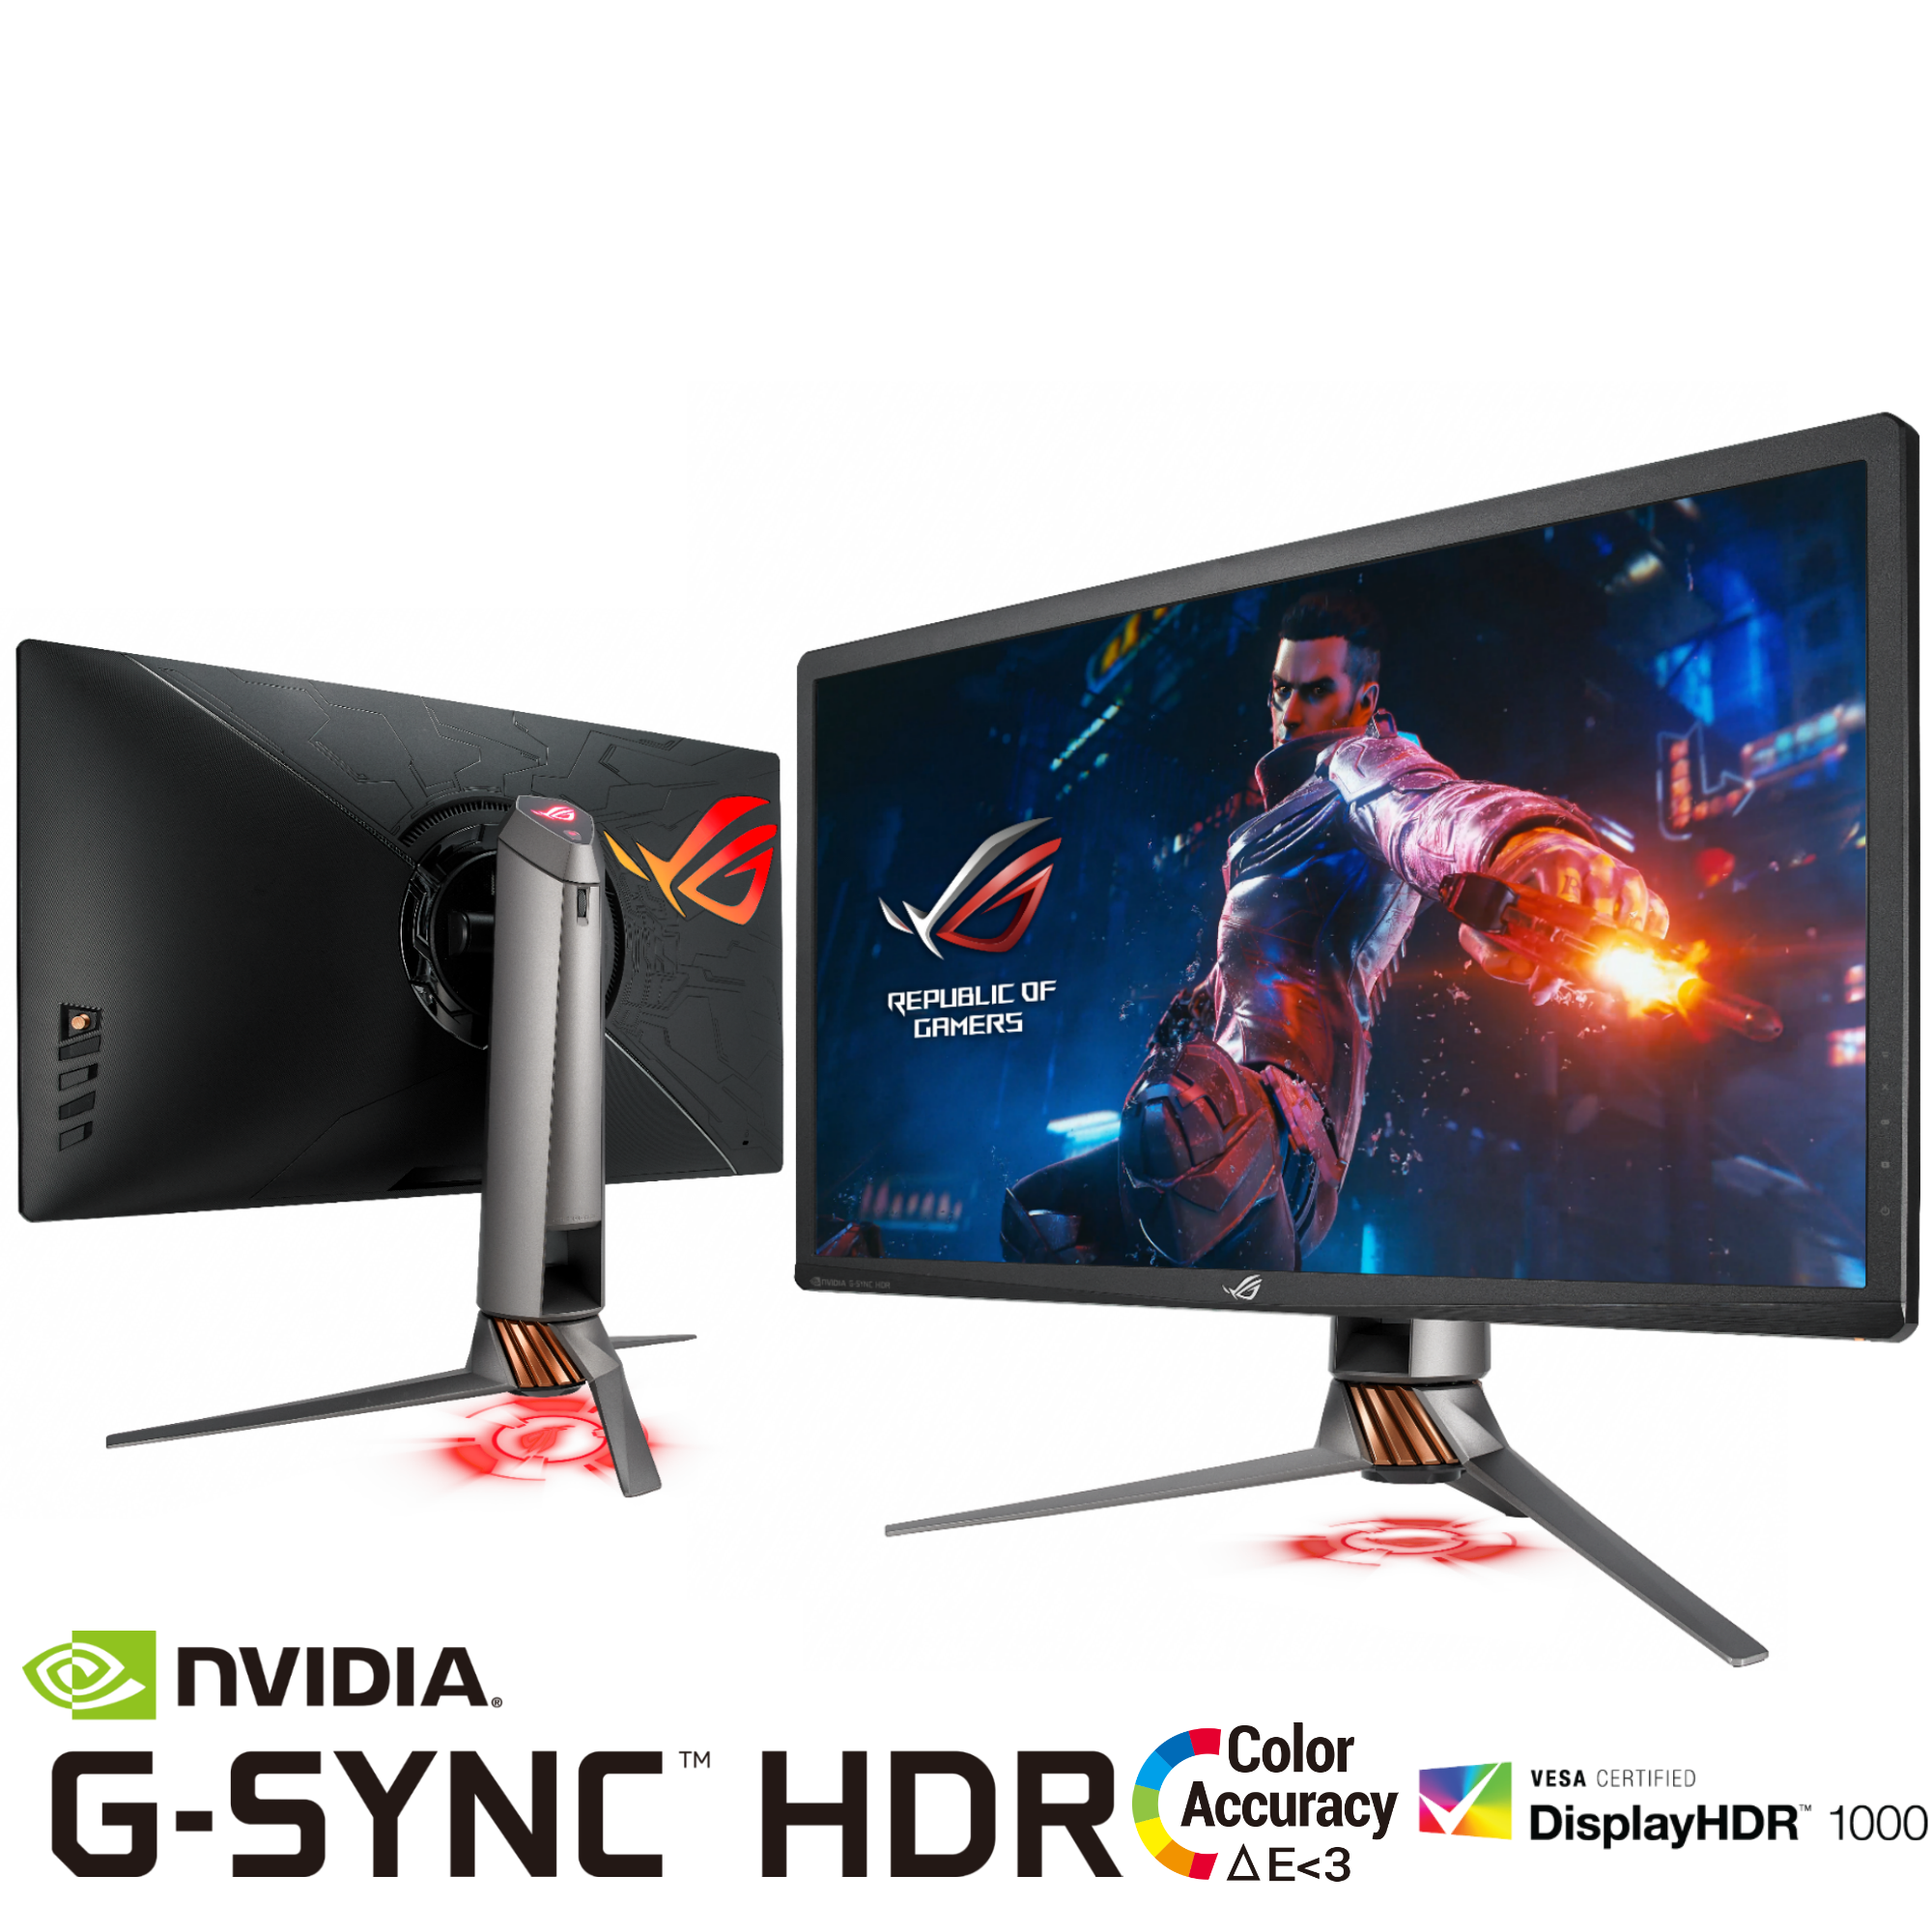 ASUS Launches ROG Swift PG27UQ 4K 144Hz NVIDIA G-SYNC HDR Monitor